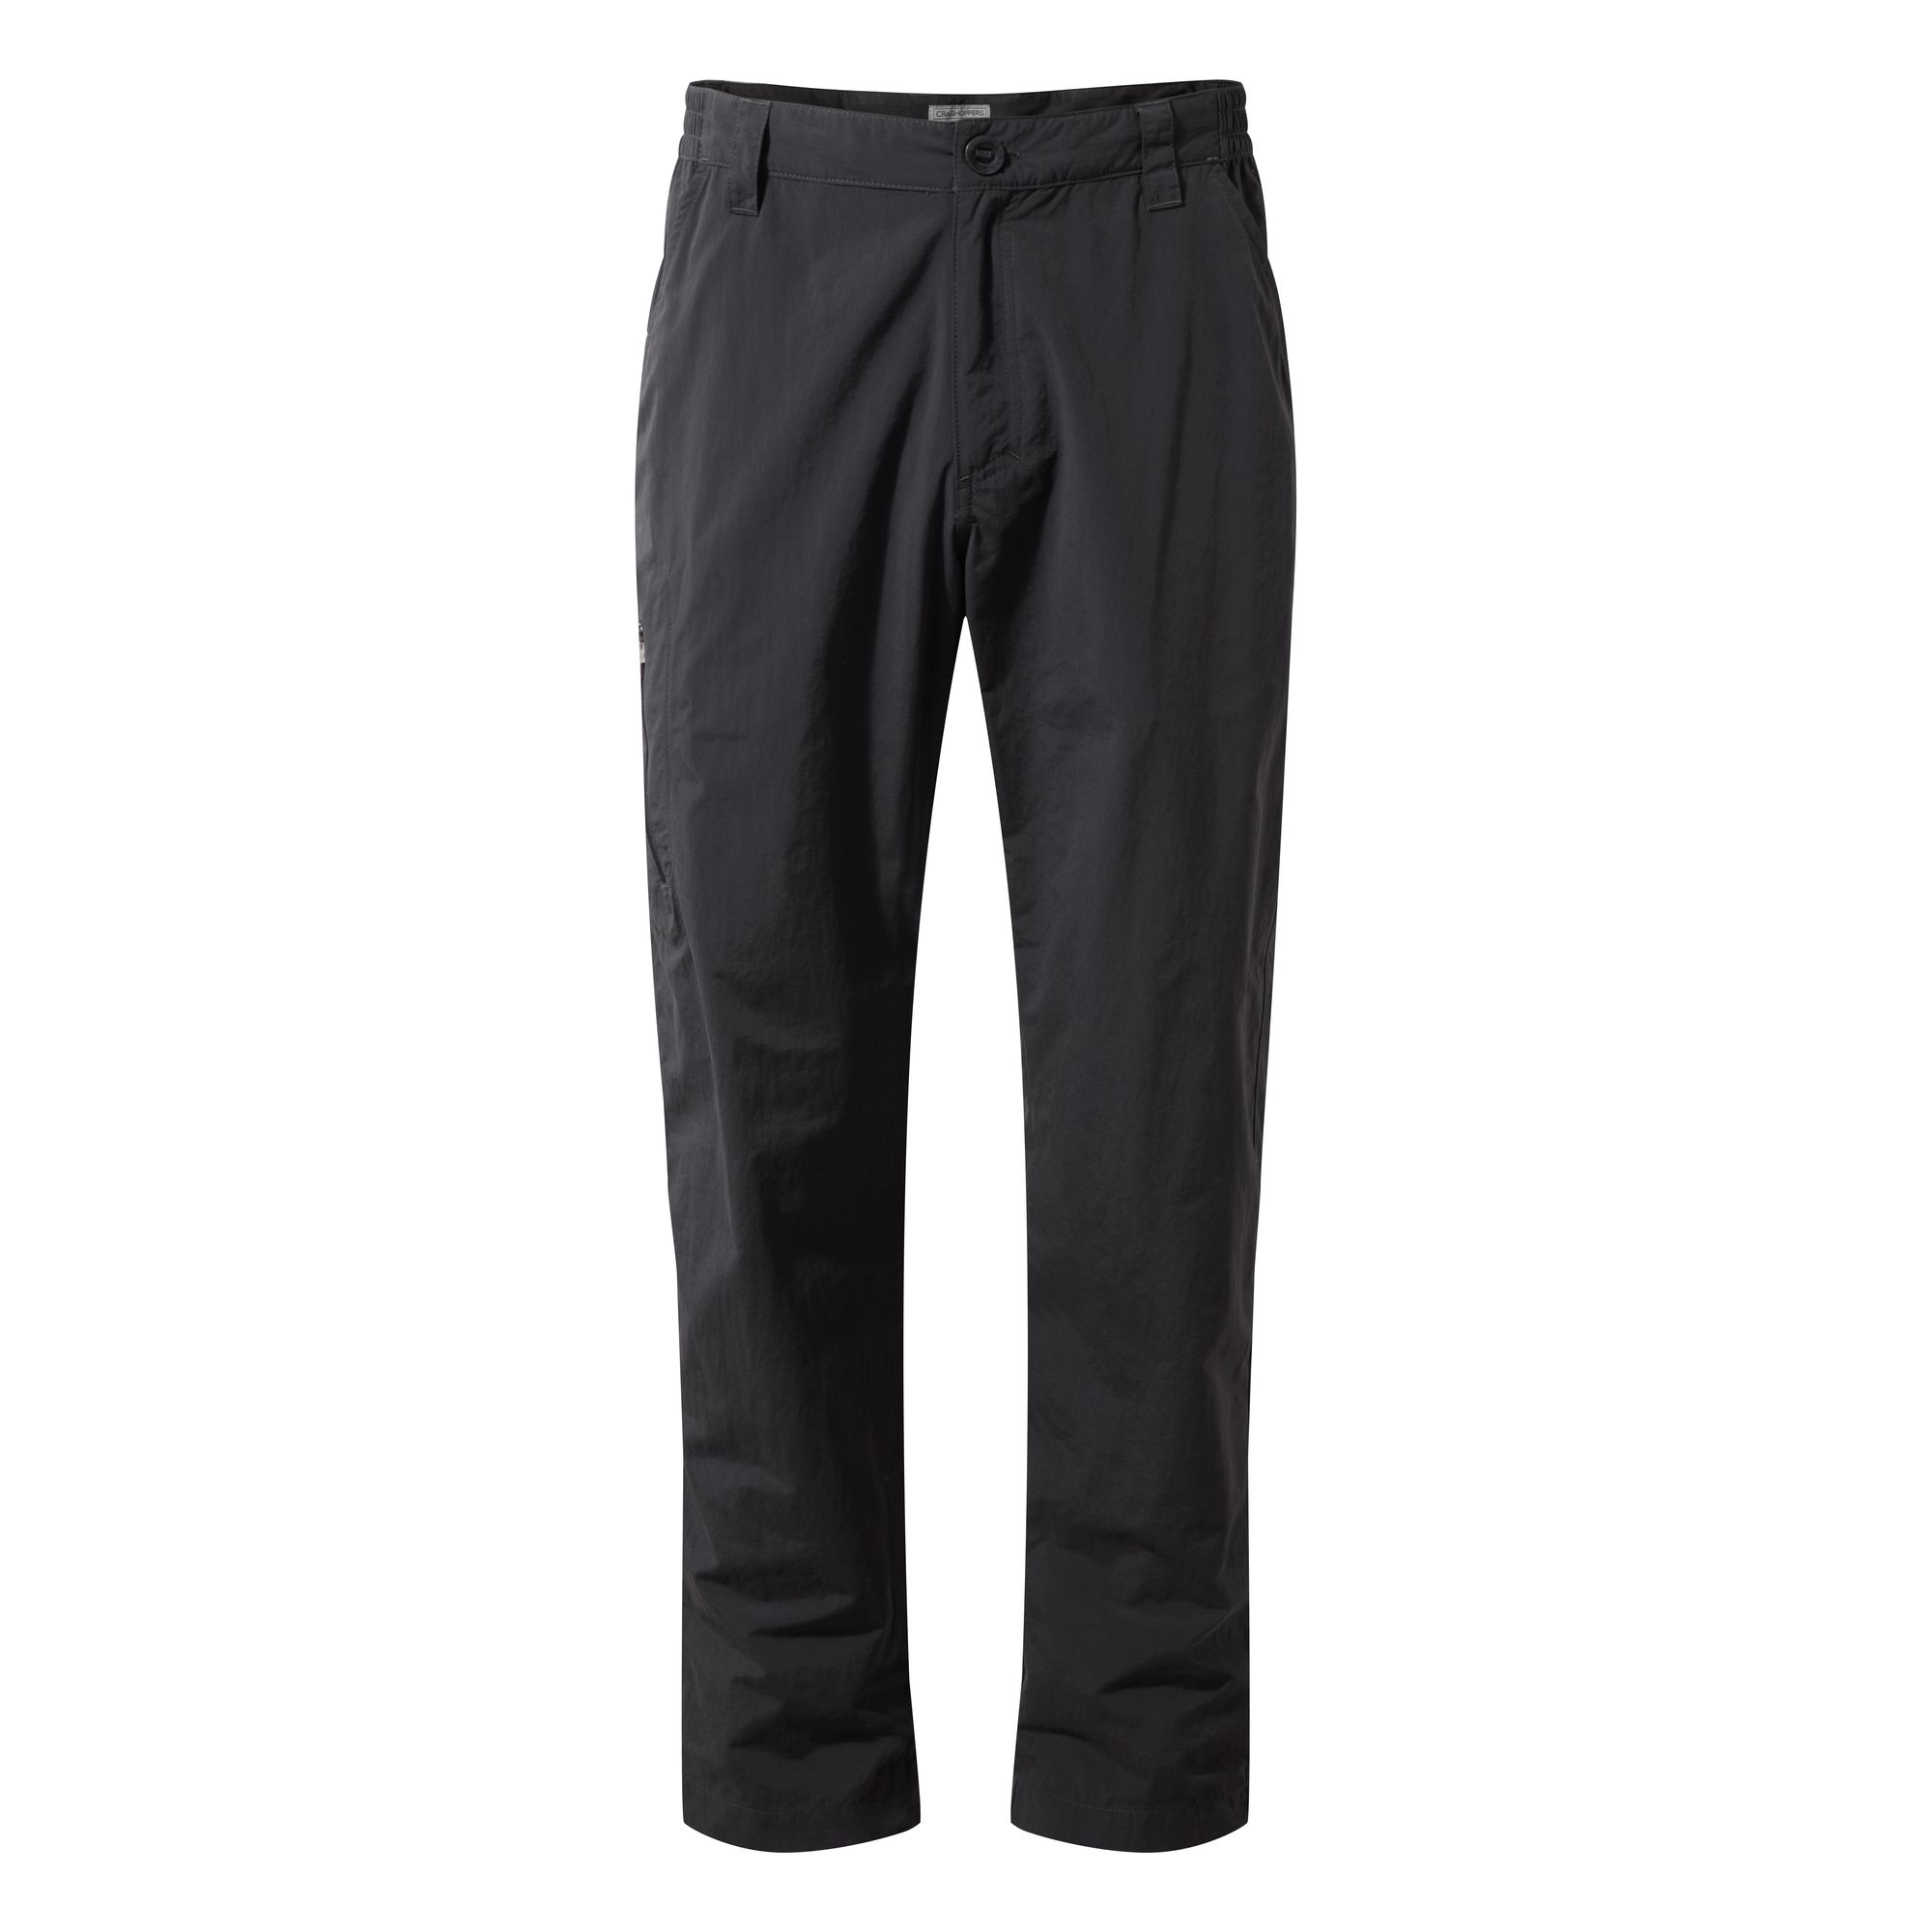 Craghoppers-Mens-NosiLife-Trousers-CG844